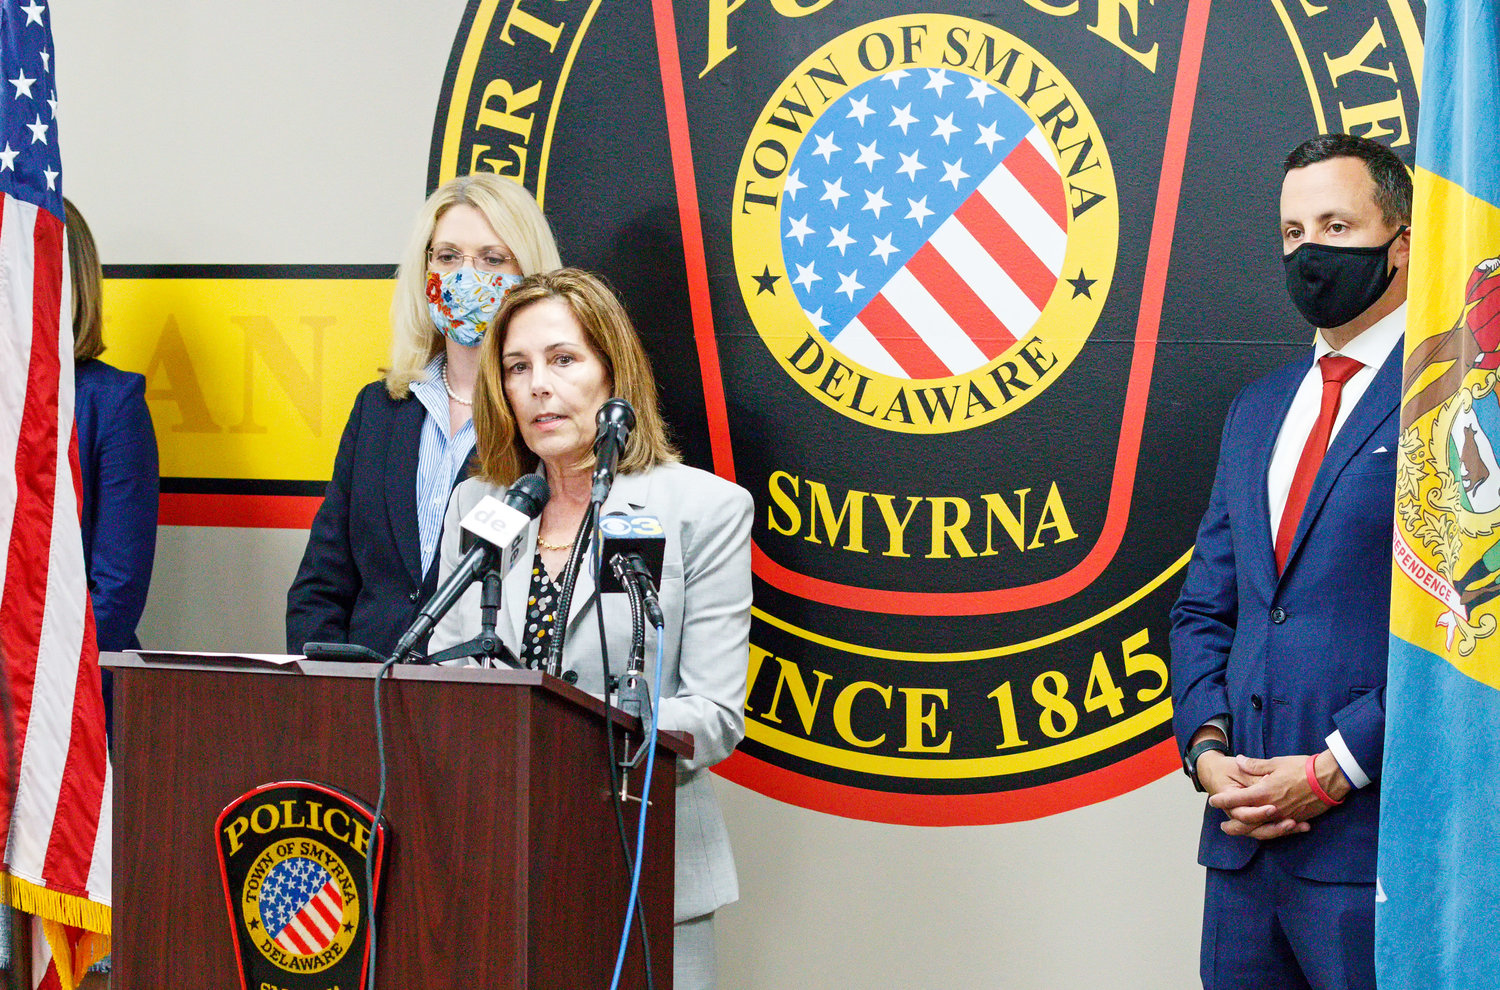 Attorney General Kathy Jennings, center, announces additional charges against Kristie Haas on Tuesday, with Deputy Attorney General Kathleen Dickerson and Chief Deputy Attorney General Alexander Mackler. Ms. Haas was additionally indicted on two counts of child abuse by murder or neglect in connection with the death of her 3-year-old daughter, Emma Grace Cole, whose body was found in Smyrna in September 2019.